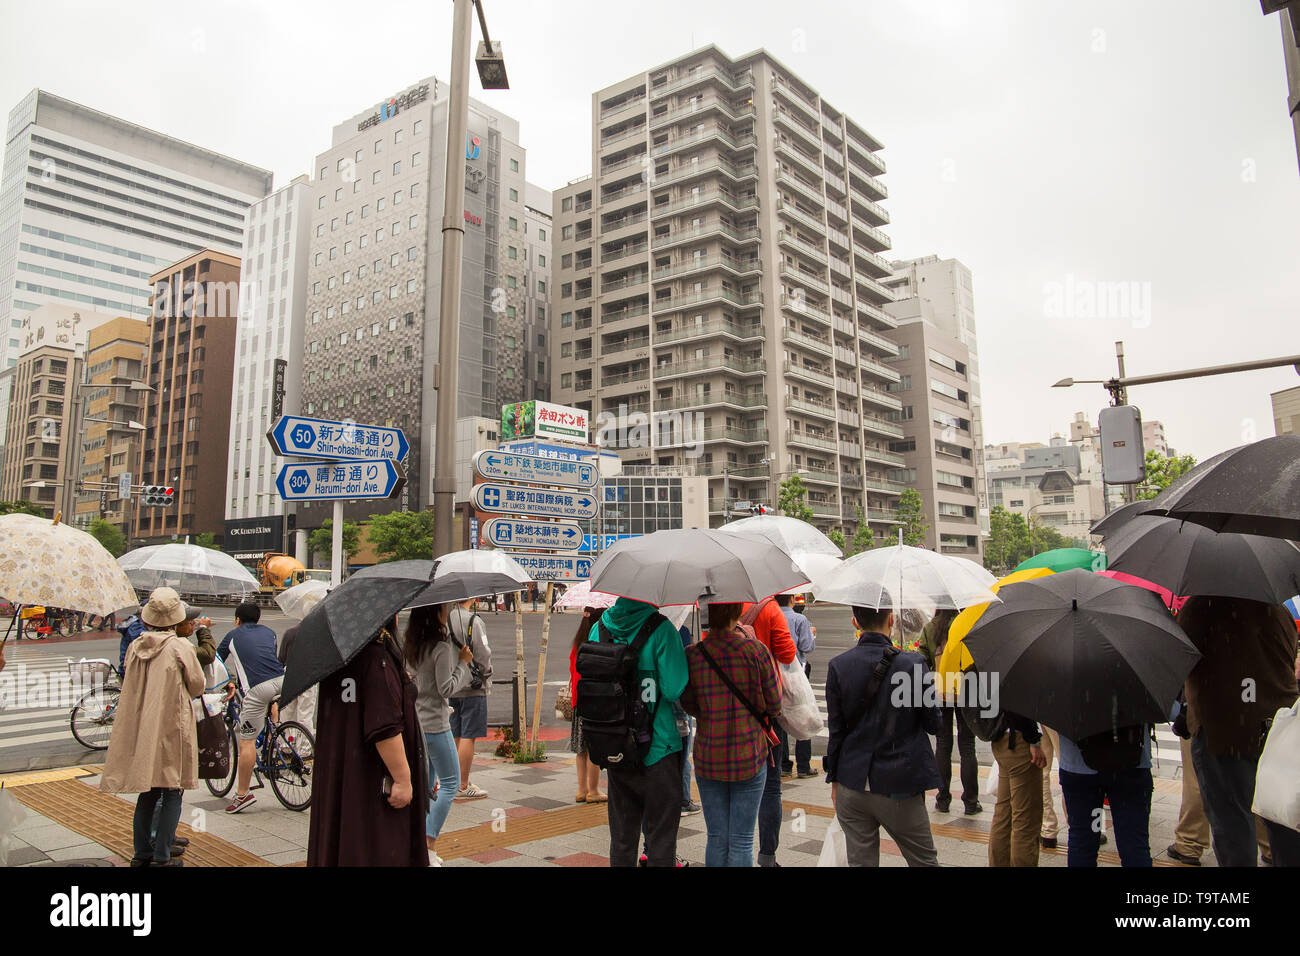 People are waiting for the green light on Harumi-dori Ave. in modern part of Tokyo, Japan. Stock Photo